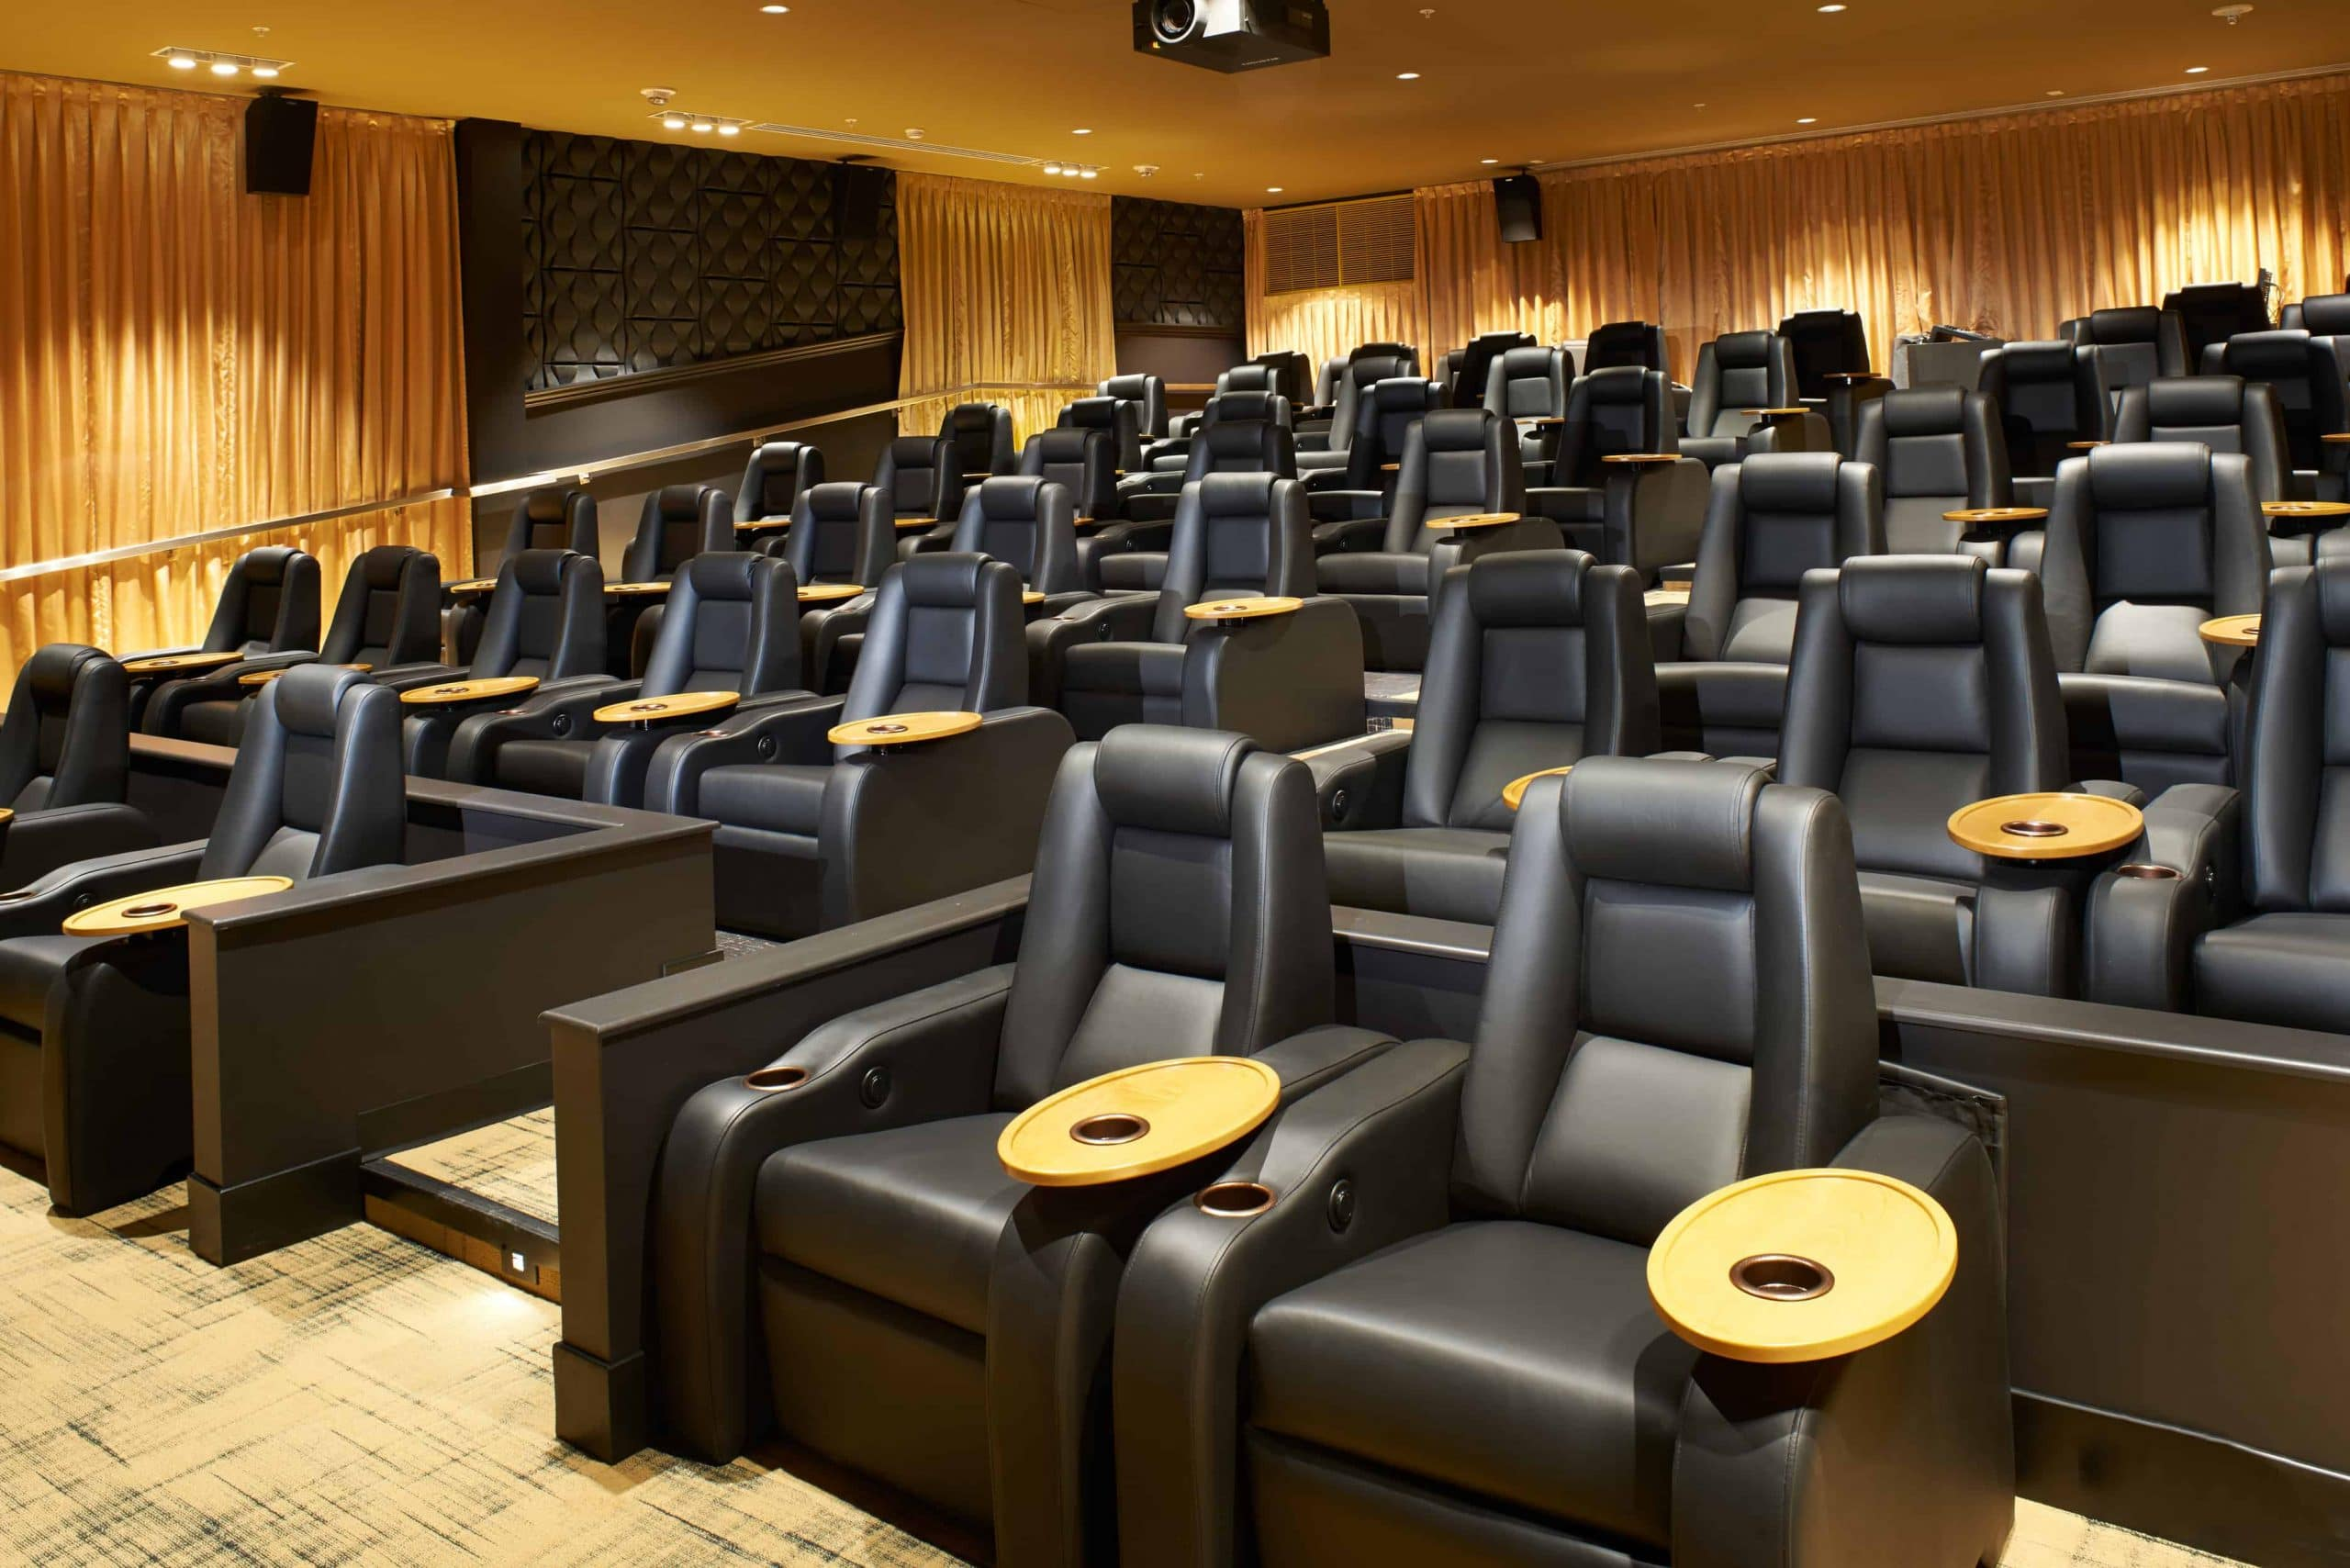 alex threater, lots of seats, theater, theatre, large cinema room